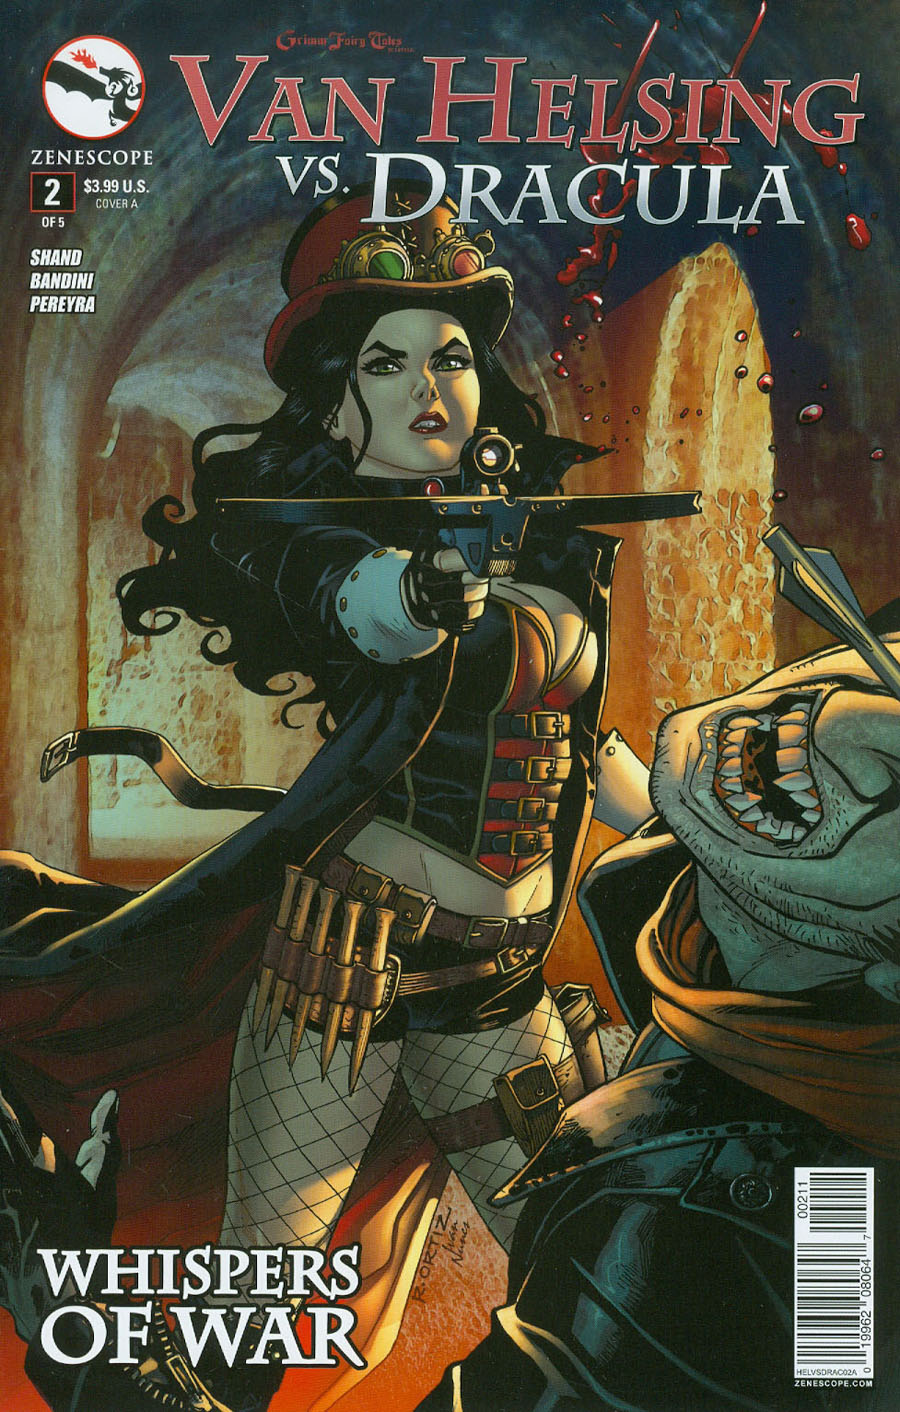 Grimm Fairy Tales Presents Van Helsing vs Dracula #2 Cover A Richard Ortiz